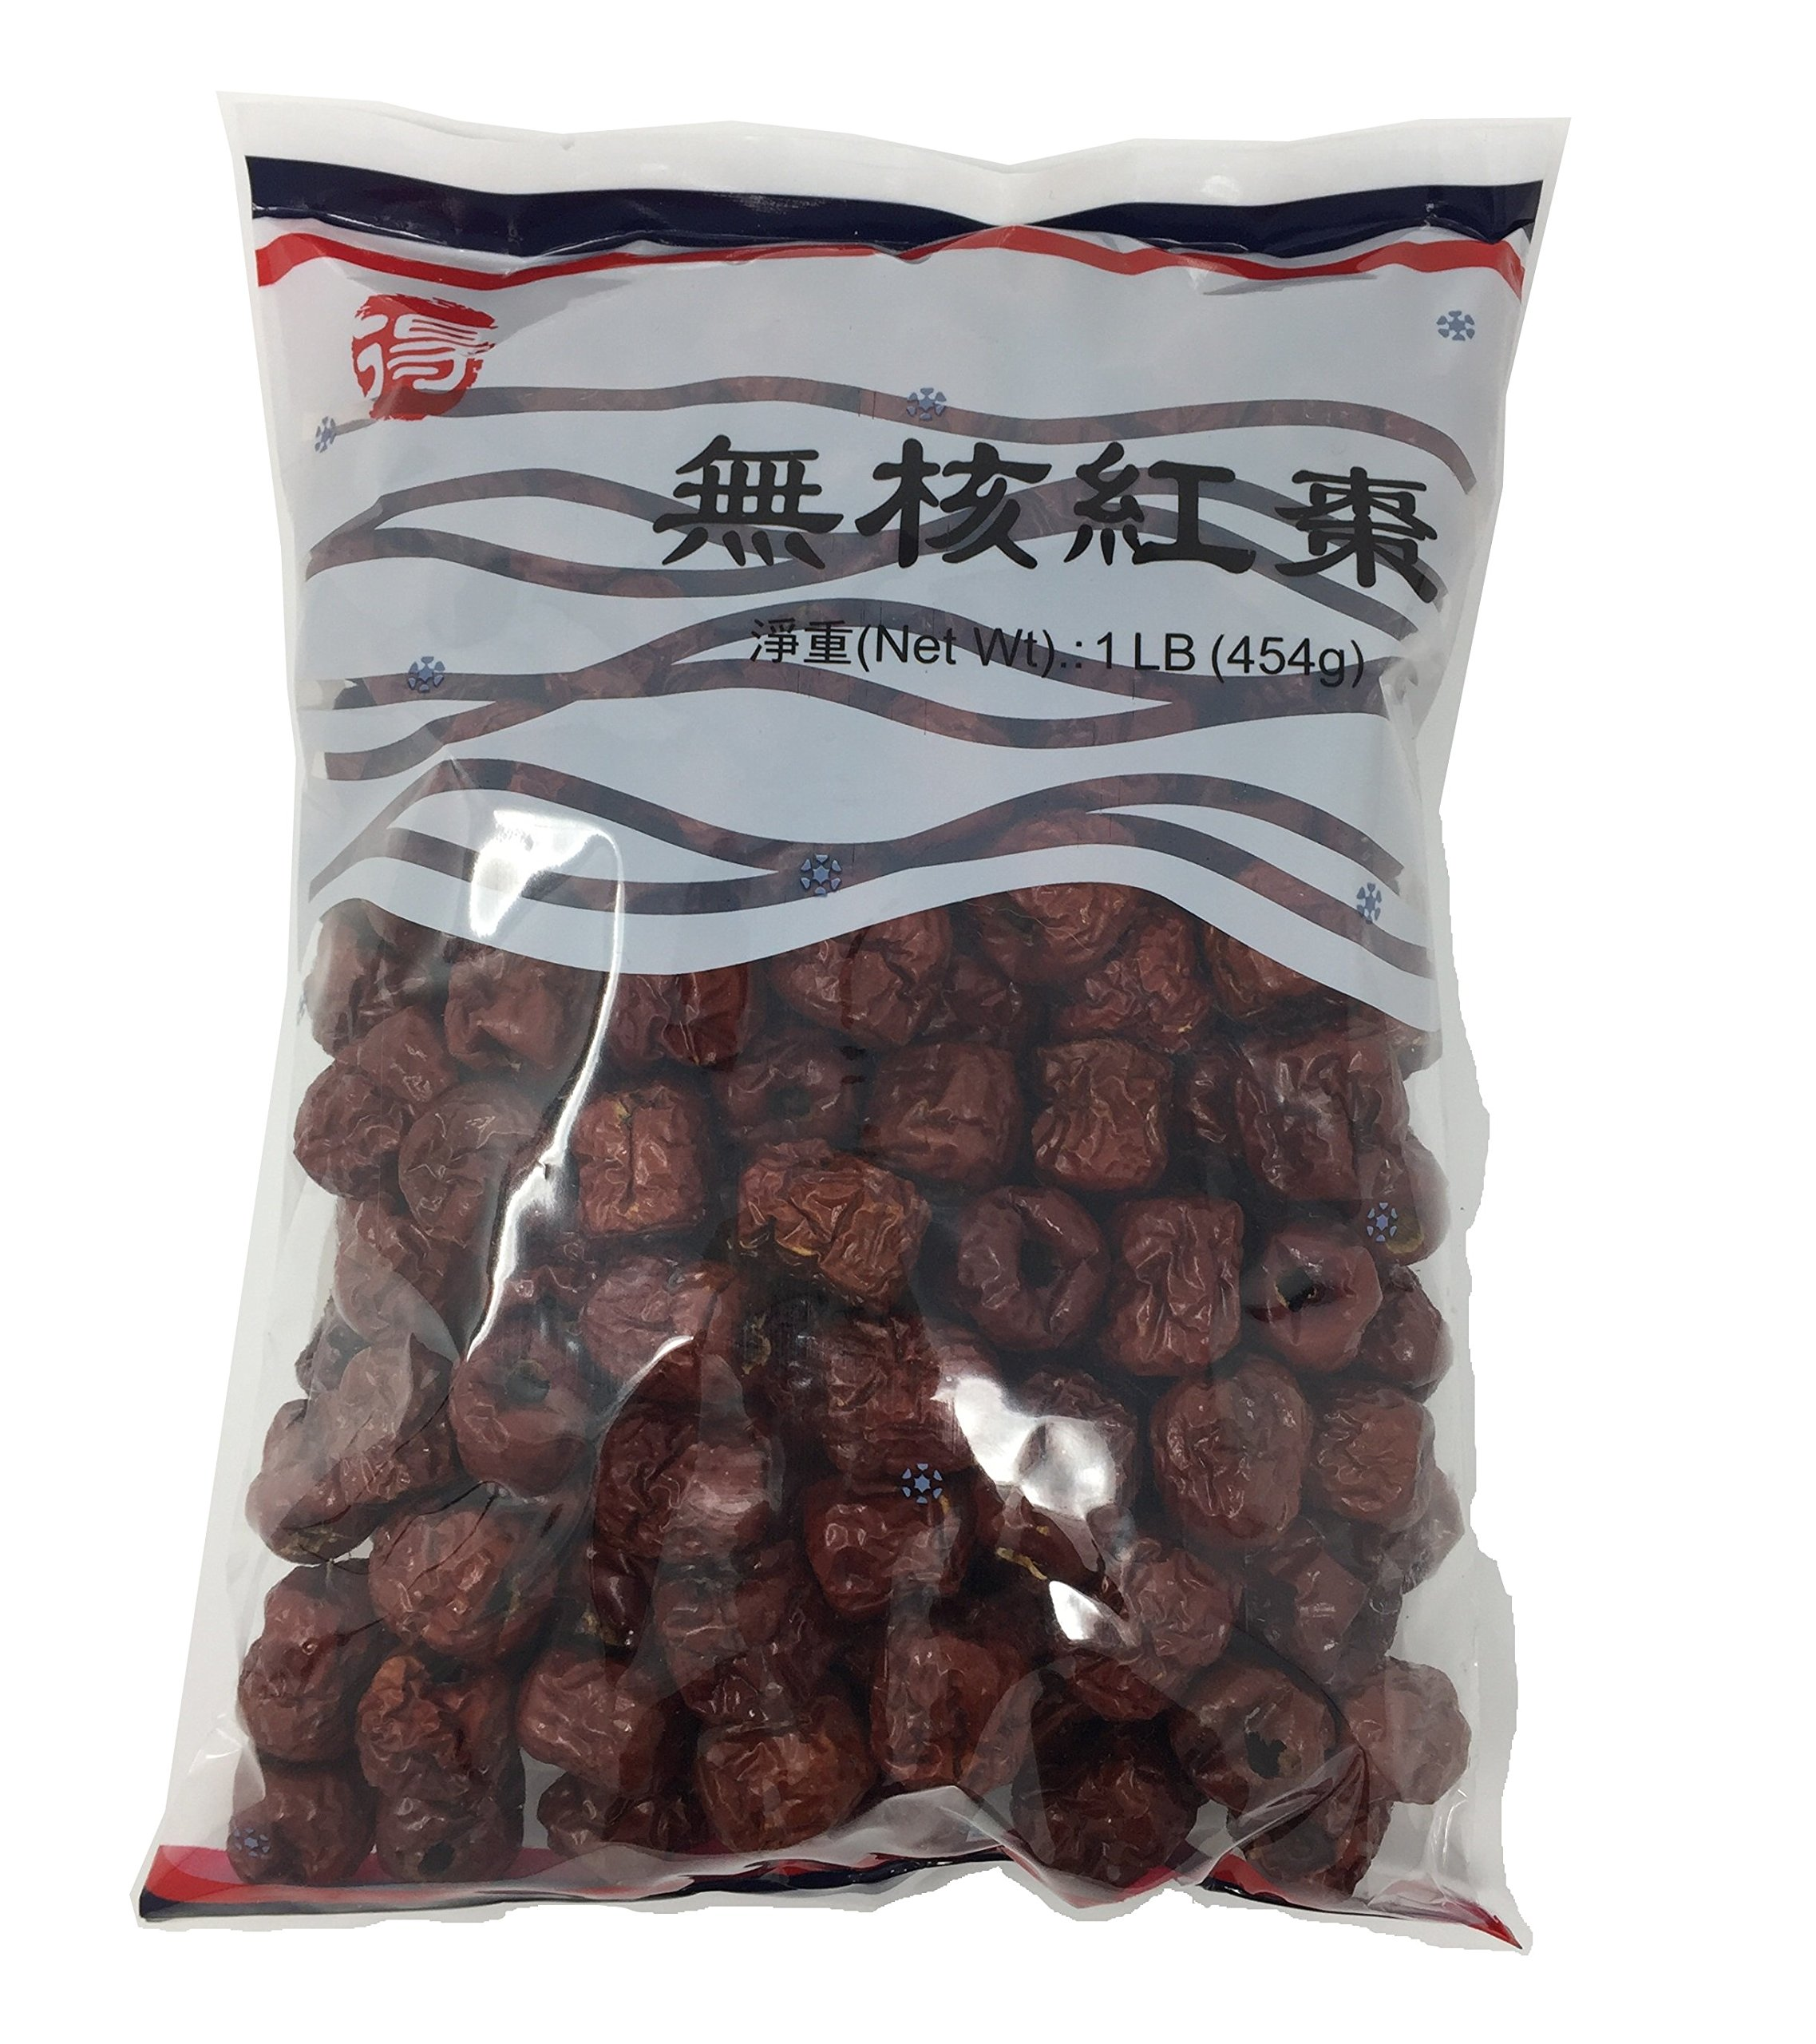 Dried Chinese Red Dates (Jujube) Hong Zao Herbal Healthy Foods (16 Oz) by DE